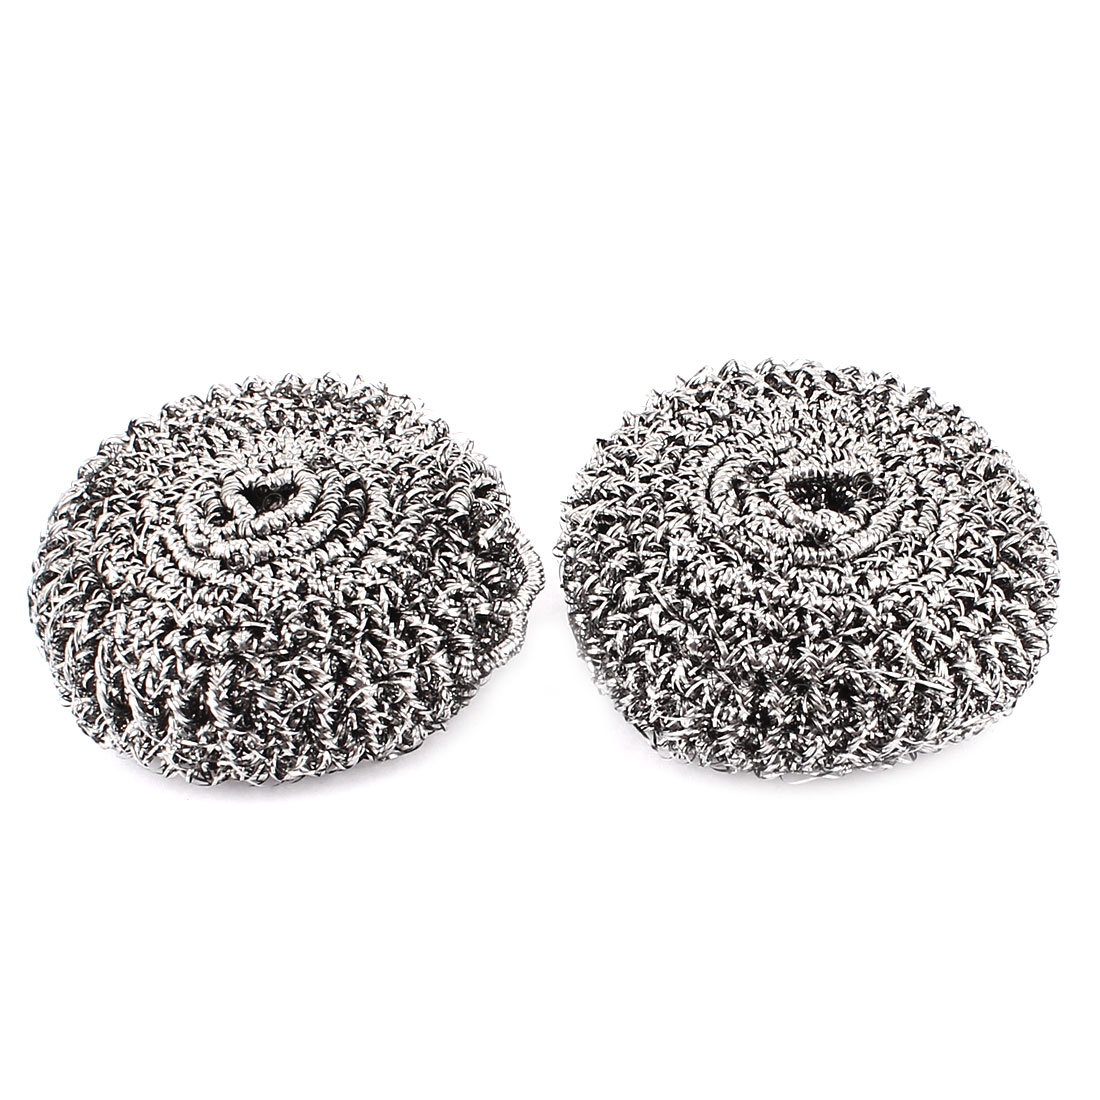 2 Pcs Stainless Steel Spiral Scourer Scrubber Heavy Dirty Pan Cleaning Pad Tool